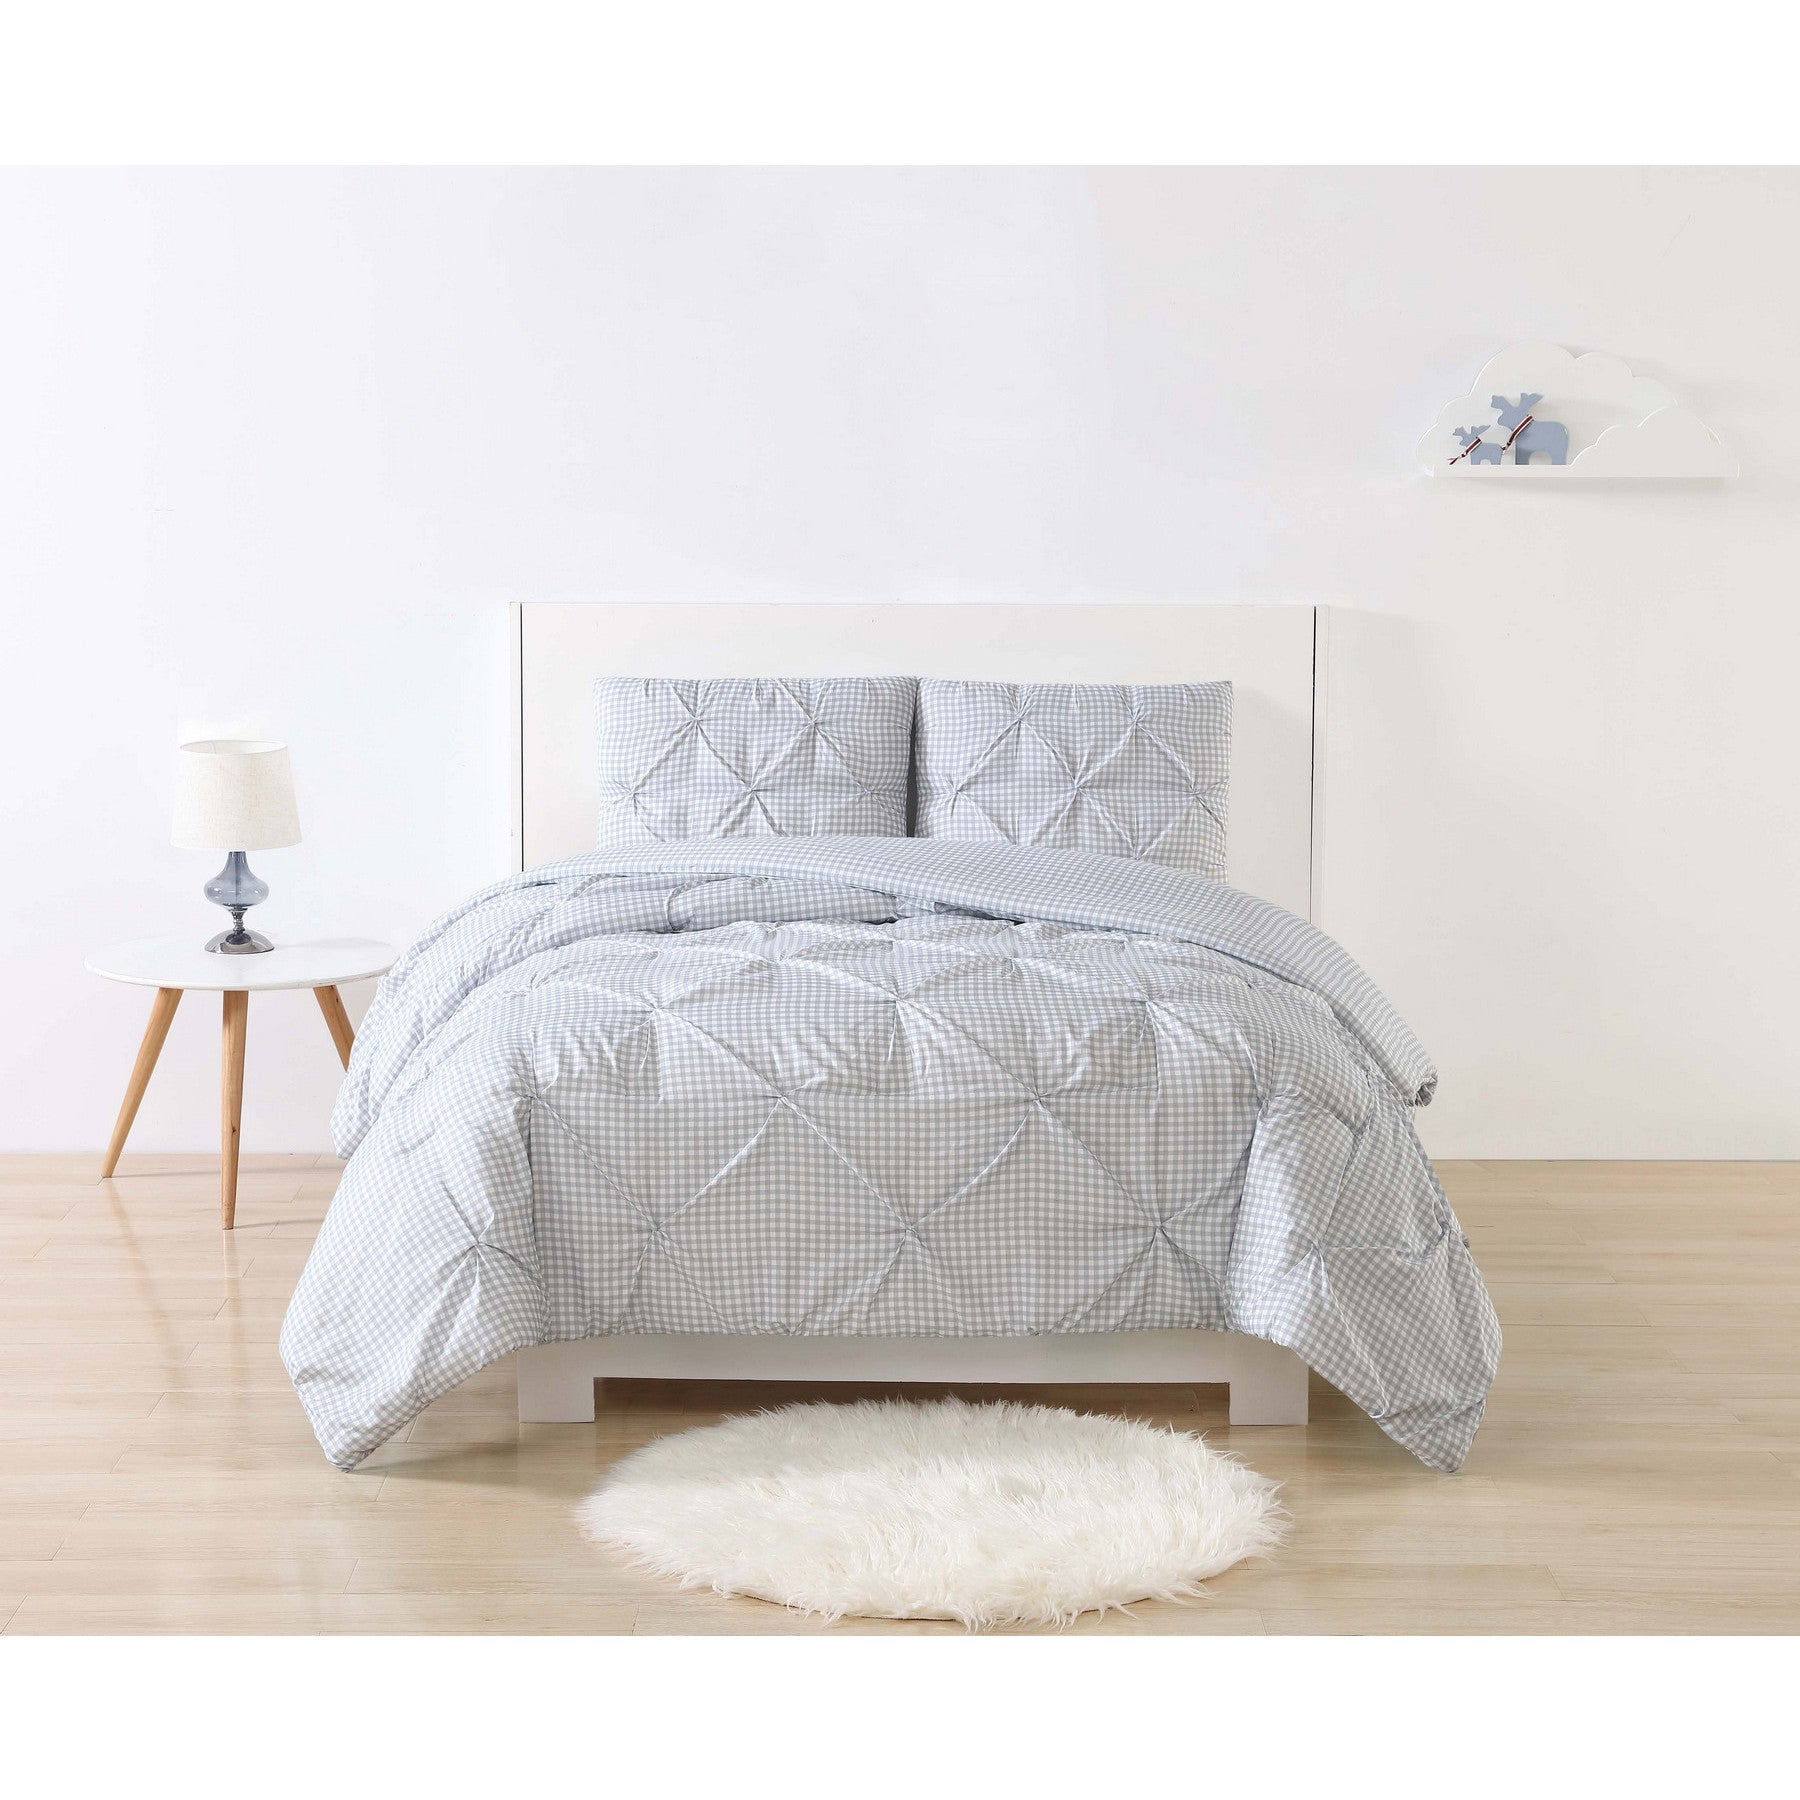 belles size com gingham shopping piece set gray full white on line cheap duvet at queen cover deals alibaba quotations guides blue maison get find